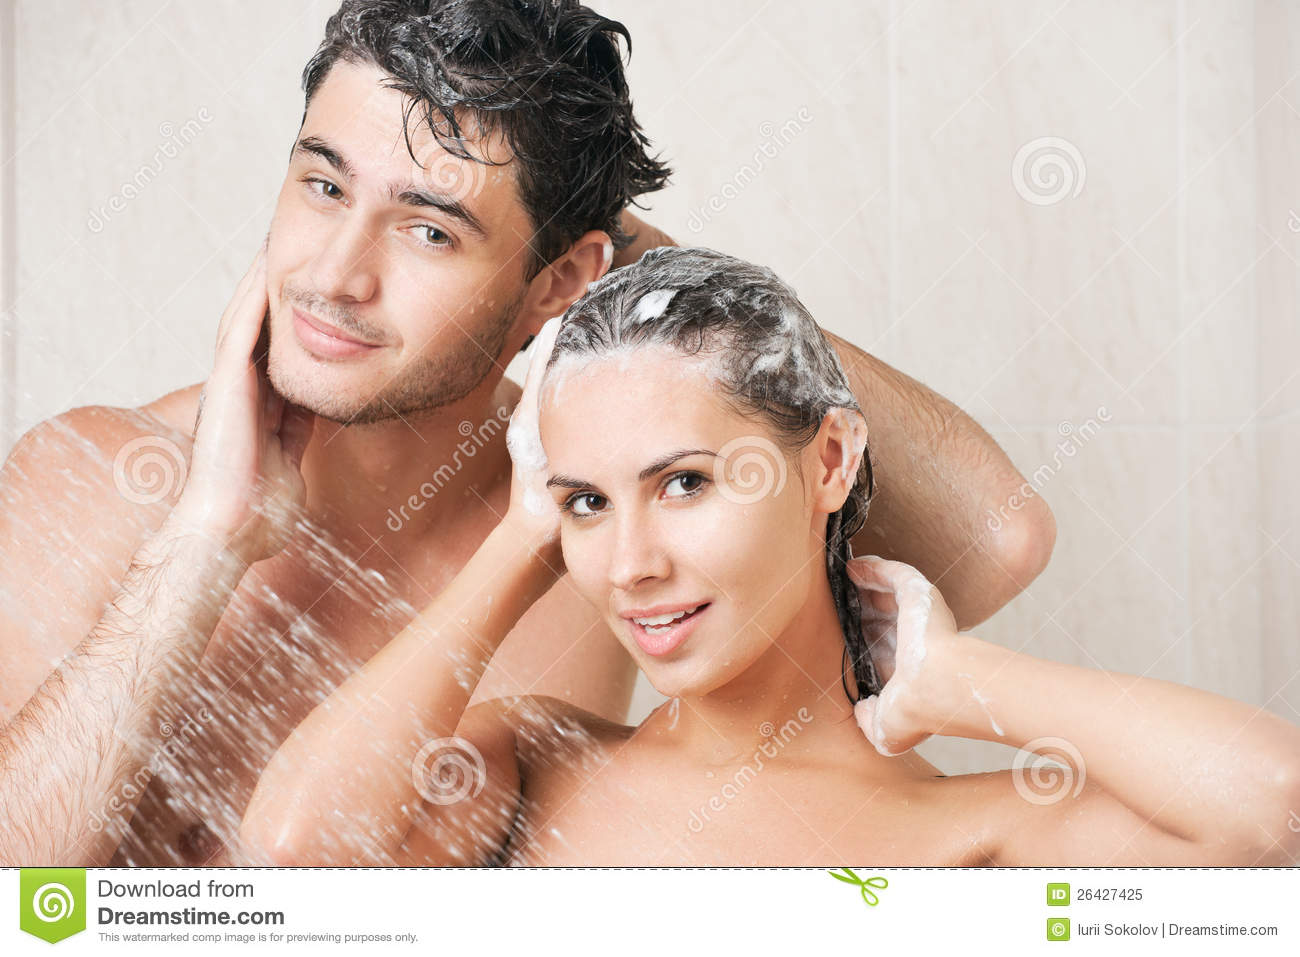 Man and woman shower together naked British